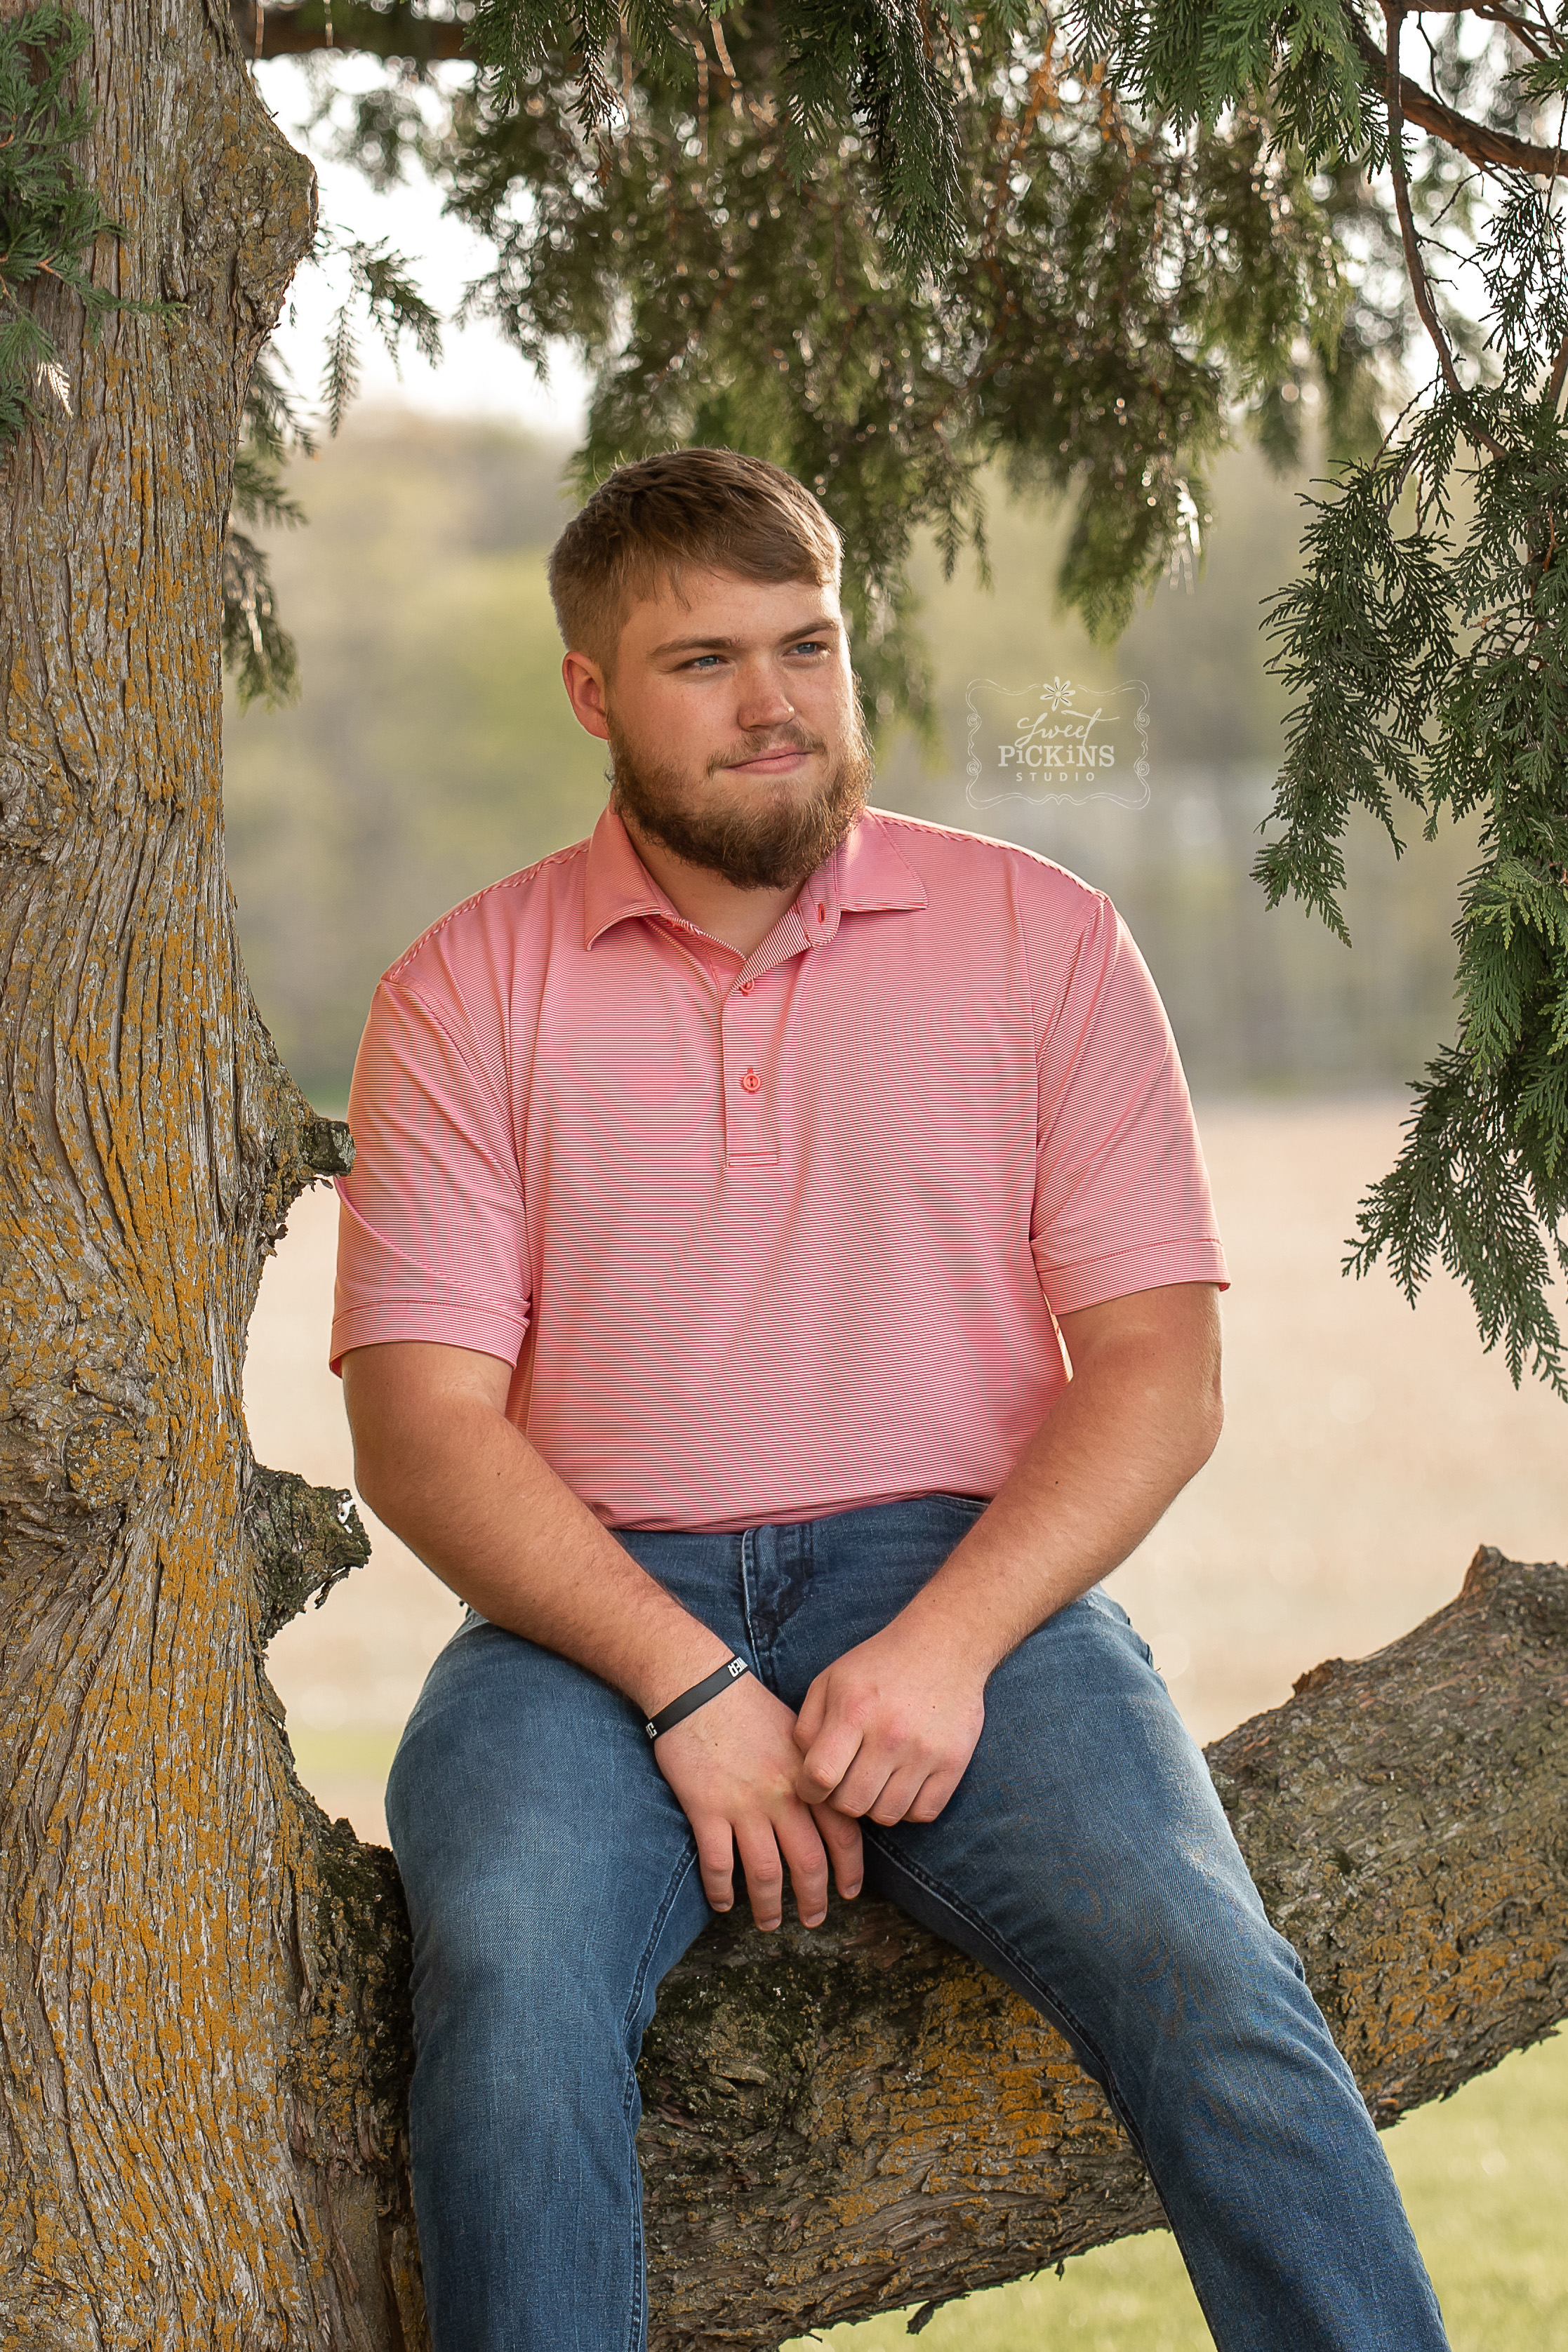 Class of 2019 Senior Guy Session by Sweet Pickins Studio | Sunset on Indiana Farm